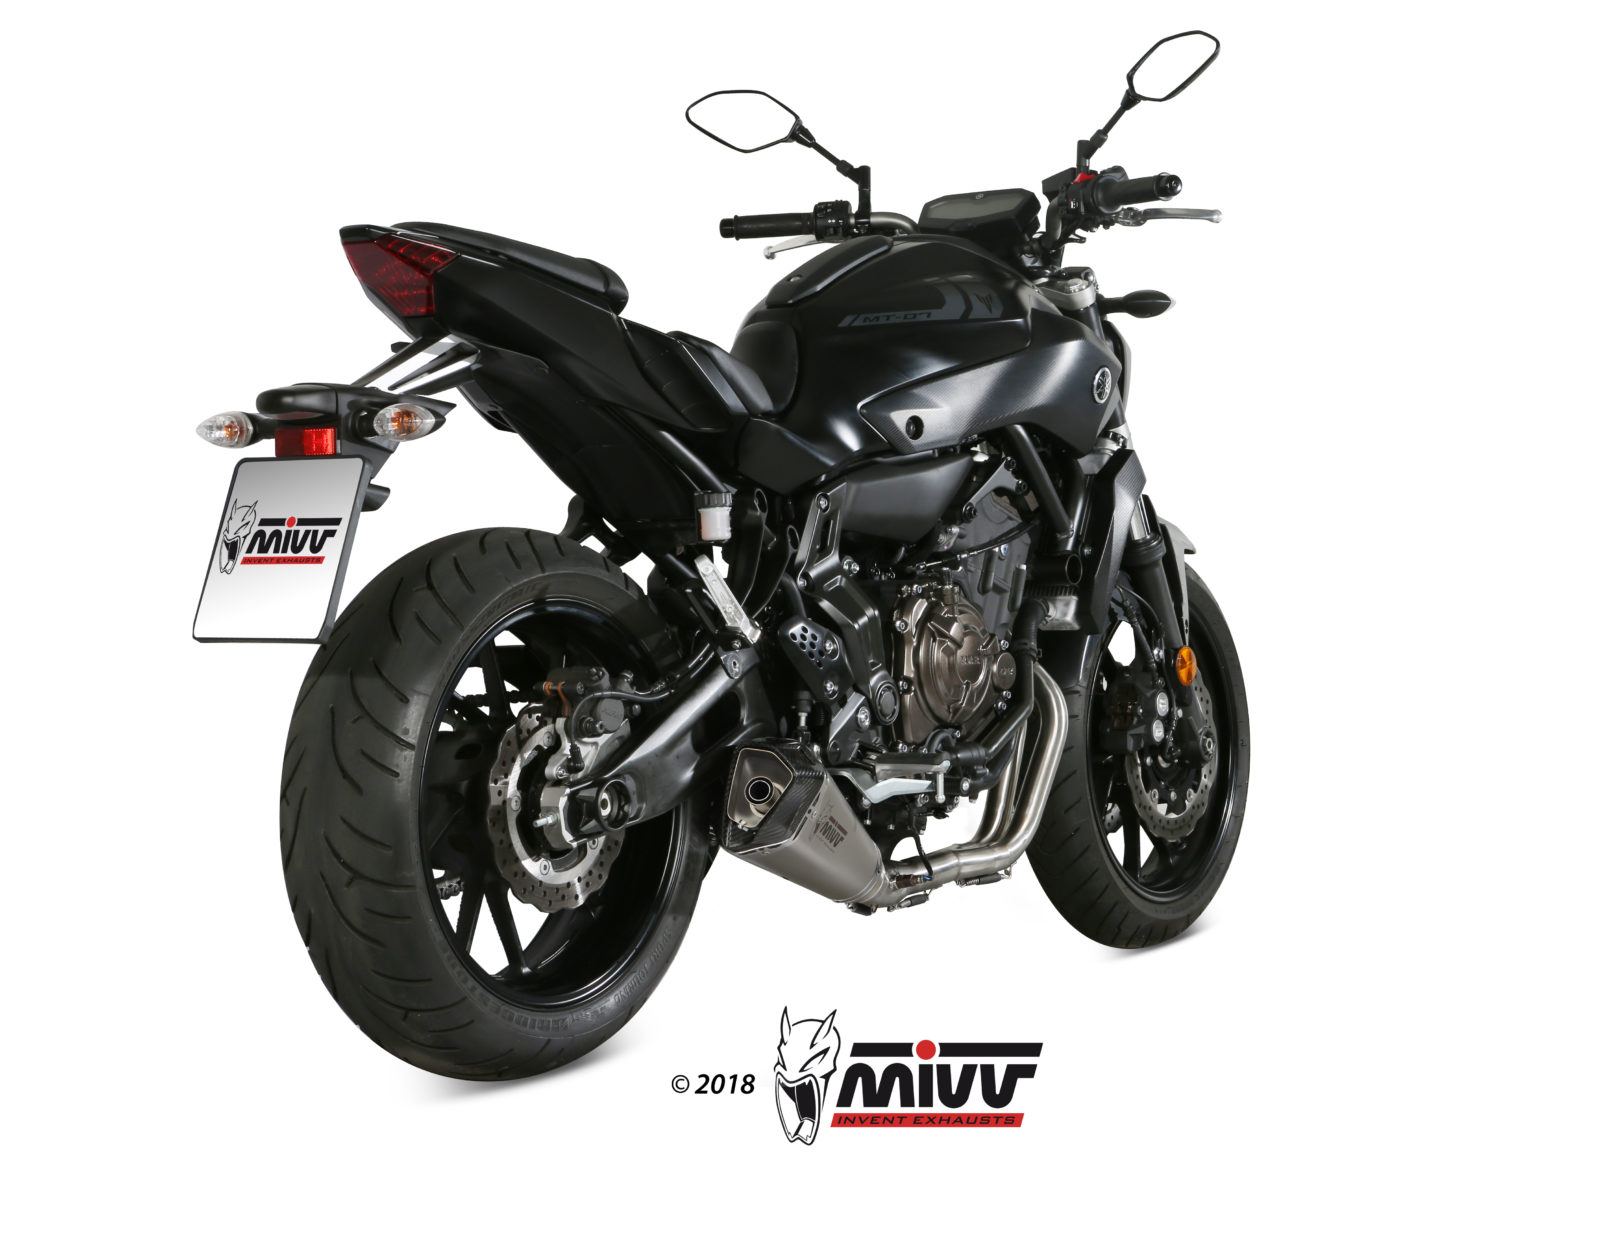 YAMAHA MT-07 Exhaust Mivv Delta Race Stainless steel Y.044.LDRX